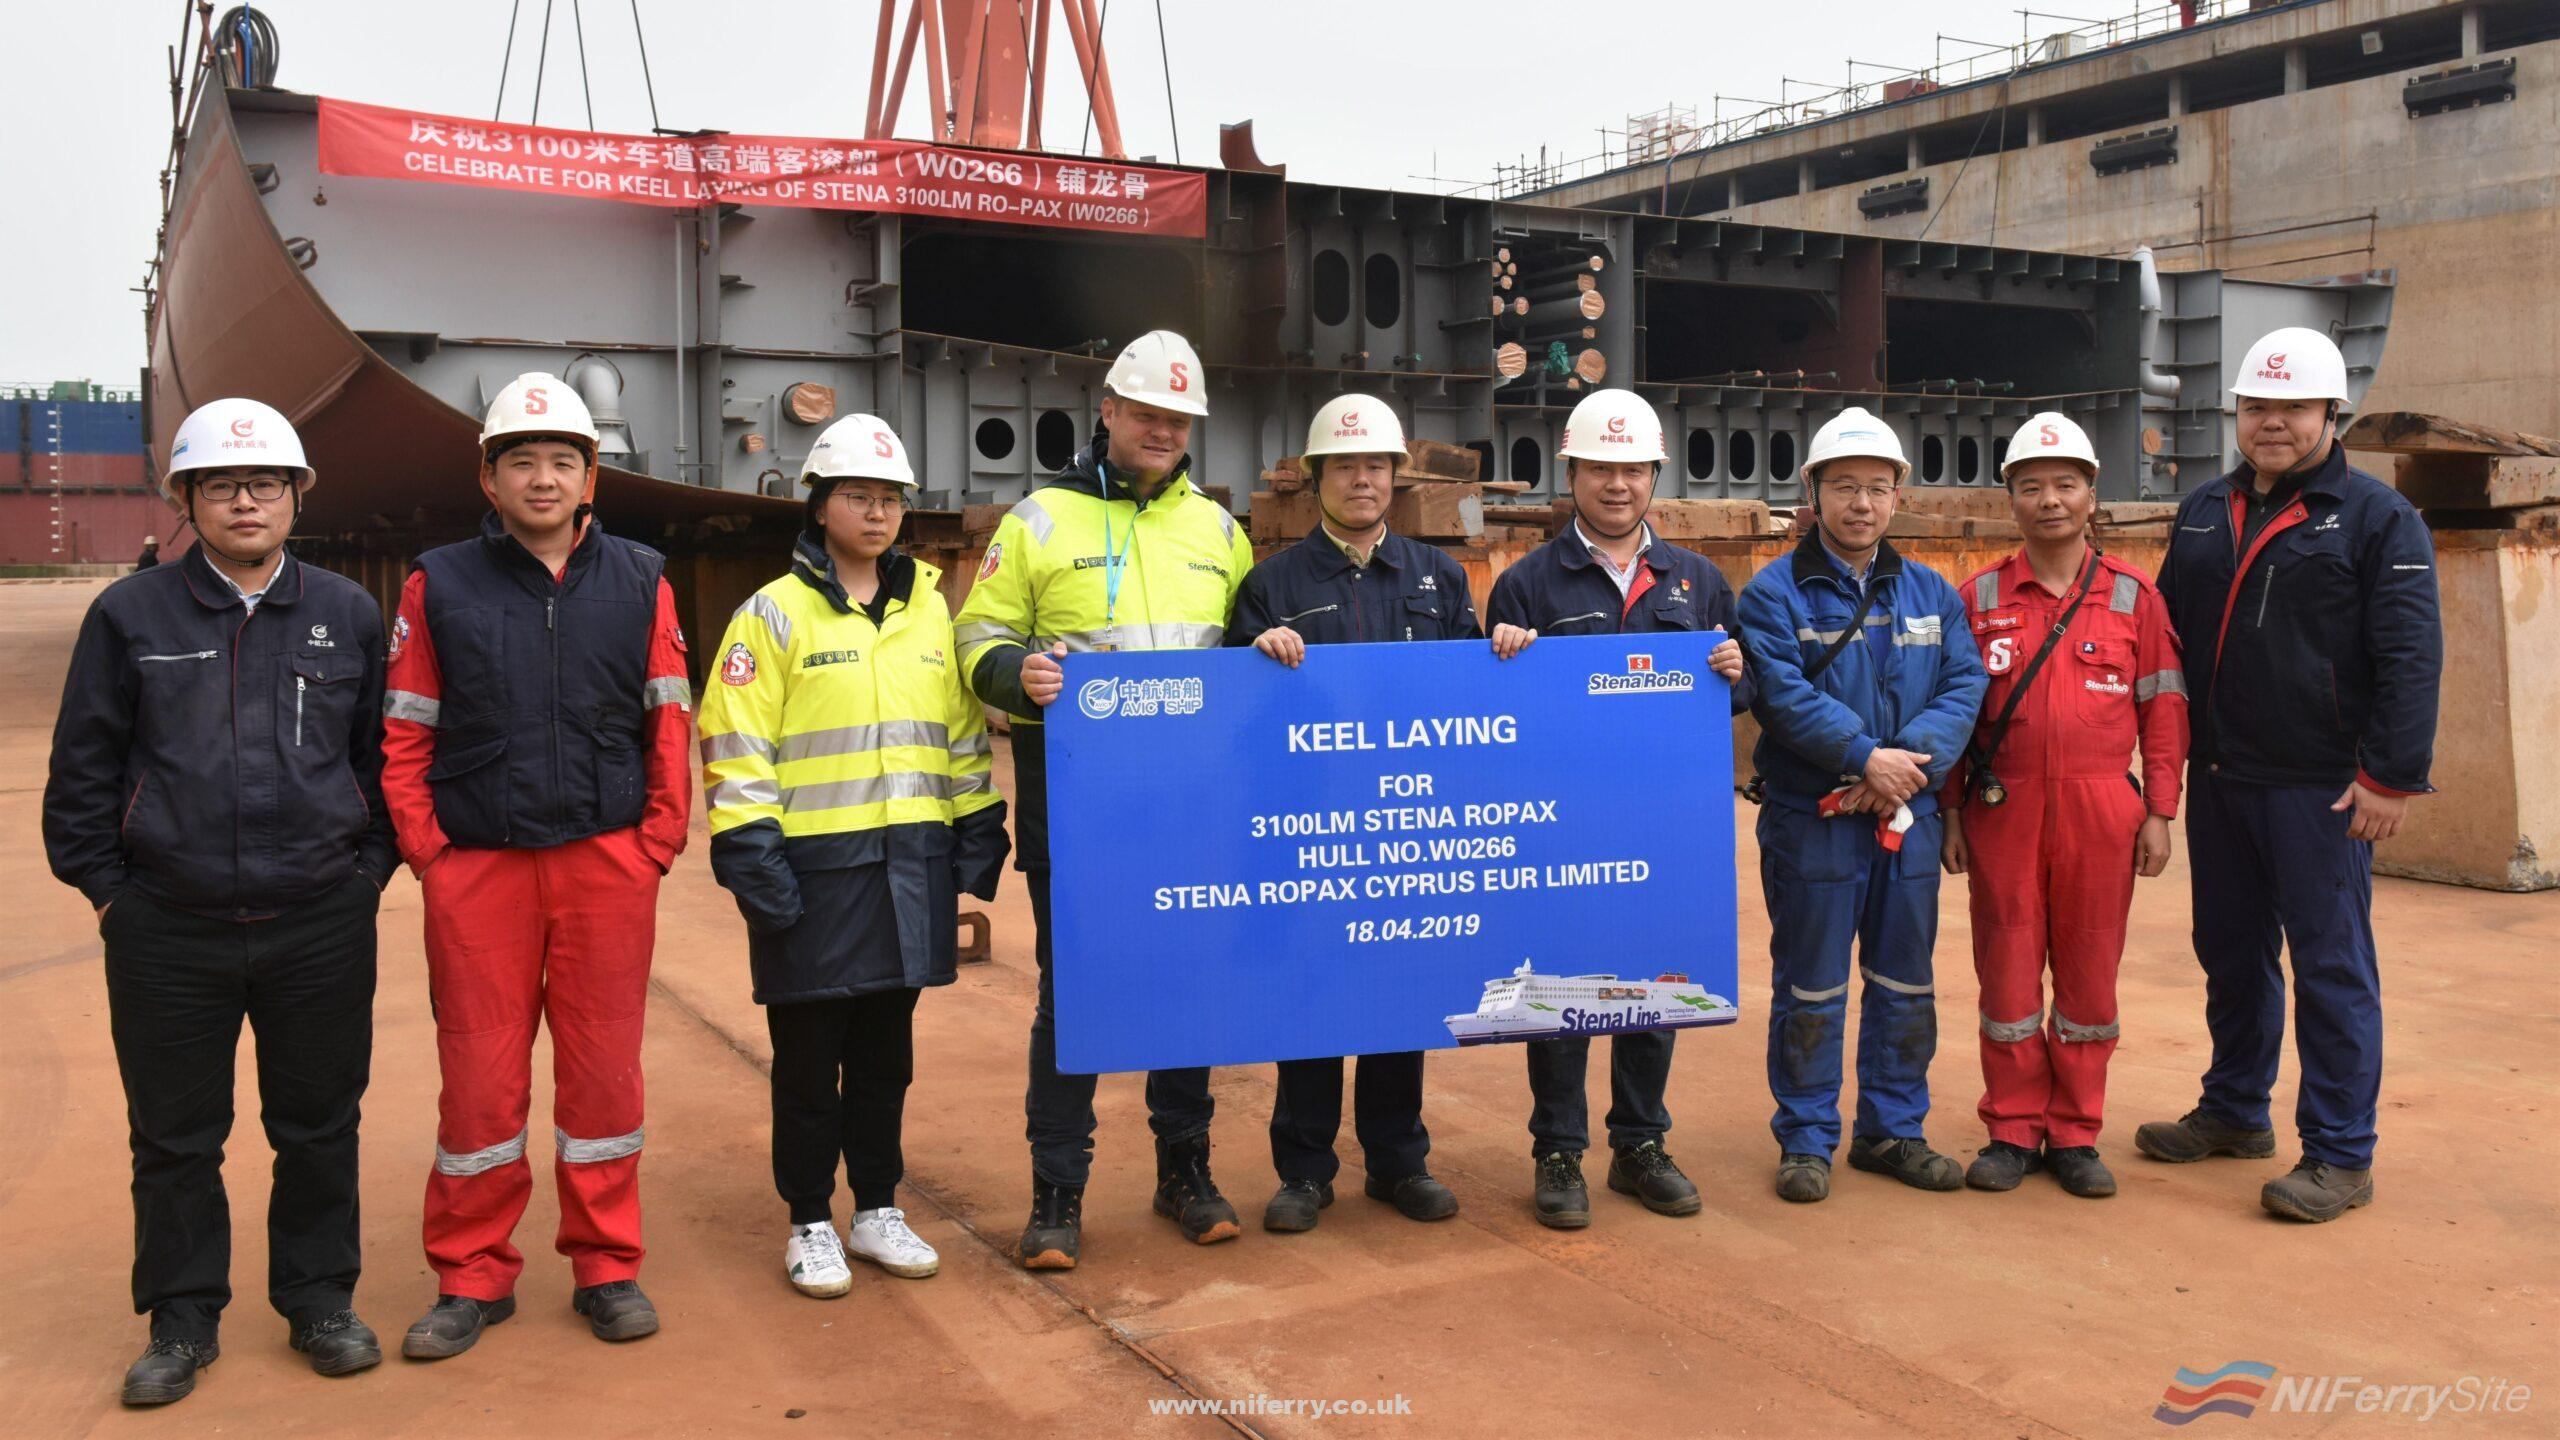 The keel-laying of the fourth Stena E-Flexer (third for Stena Line) yard number W0266, to be named STENA EMBLA. Copyright © Stena Line.